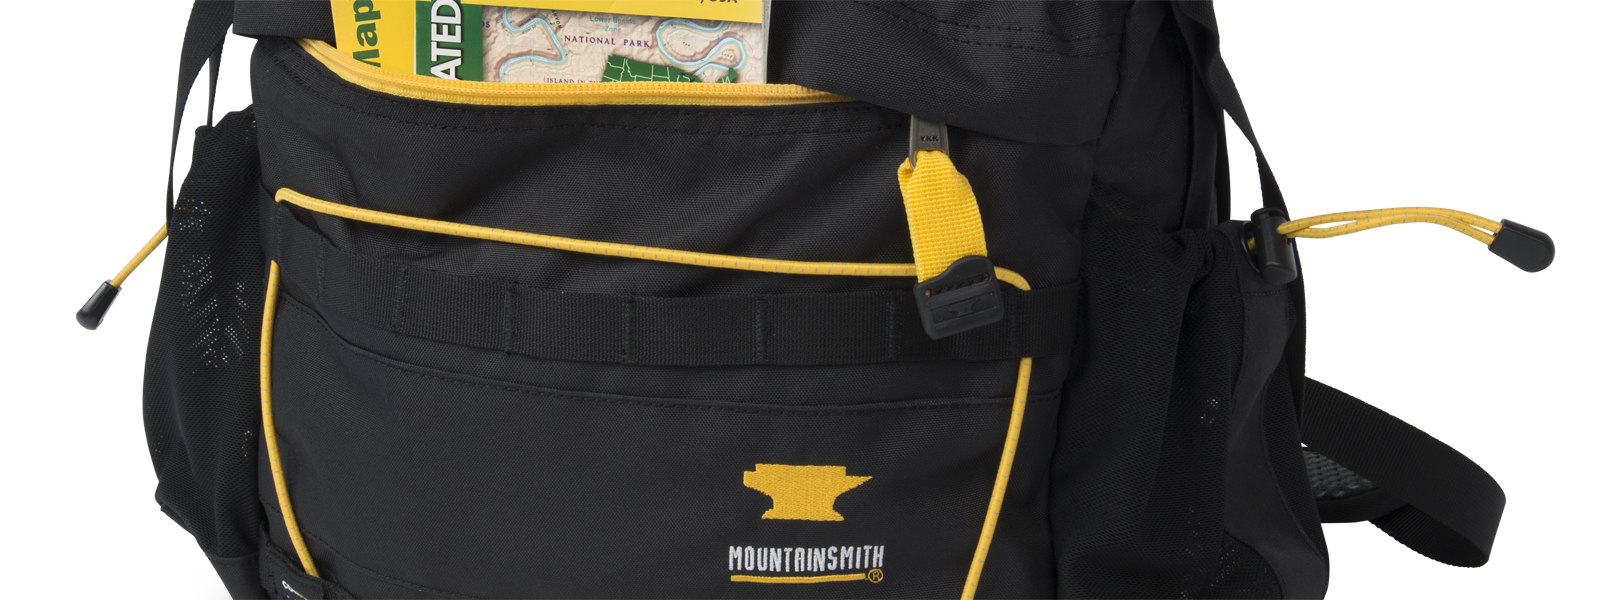 CORDURA® Brand Gears Up With Mountainsmith